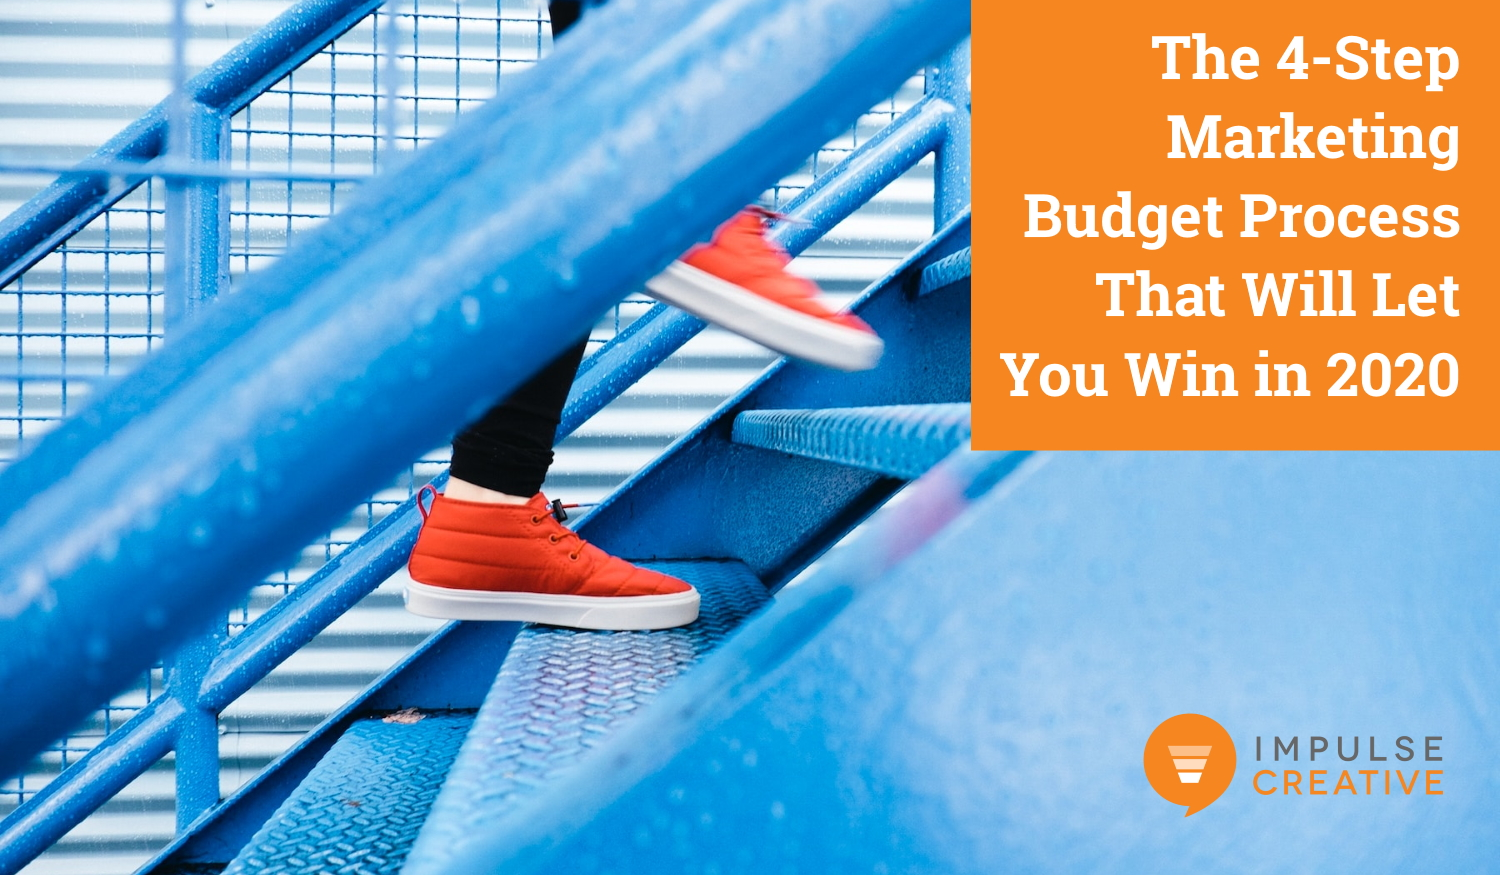 The 4-Step Marketing Budget Process That Will Let You Win in 2020